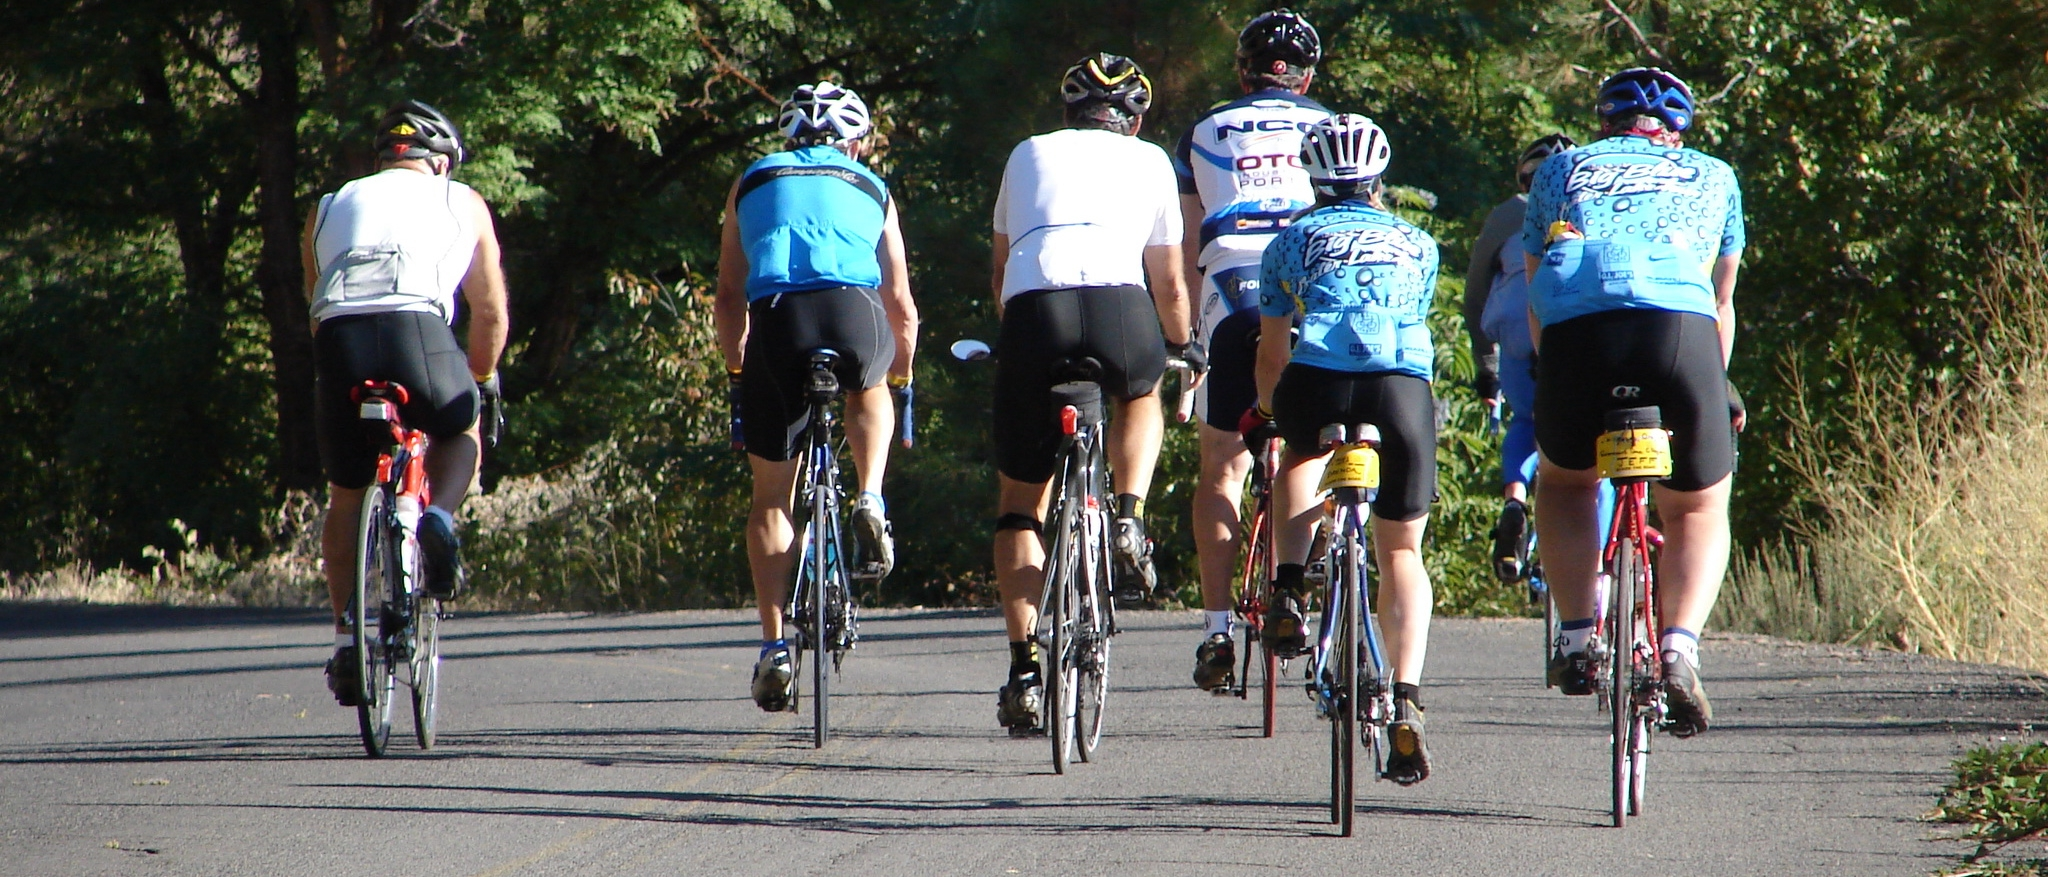 Riding More Will Help Me Get Over an Injury… Right? – by Dr. Wayne T. Hansen D.C.